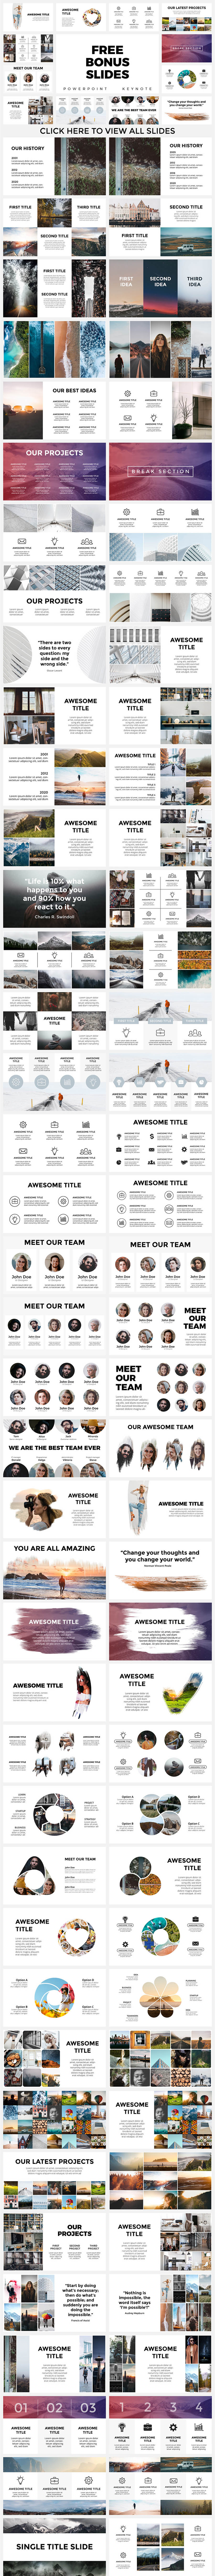 Cool Infographics in 2020. Best Infographics Bundle: 1500 items - $29 - 02 Slides